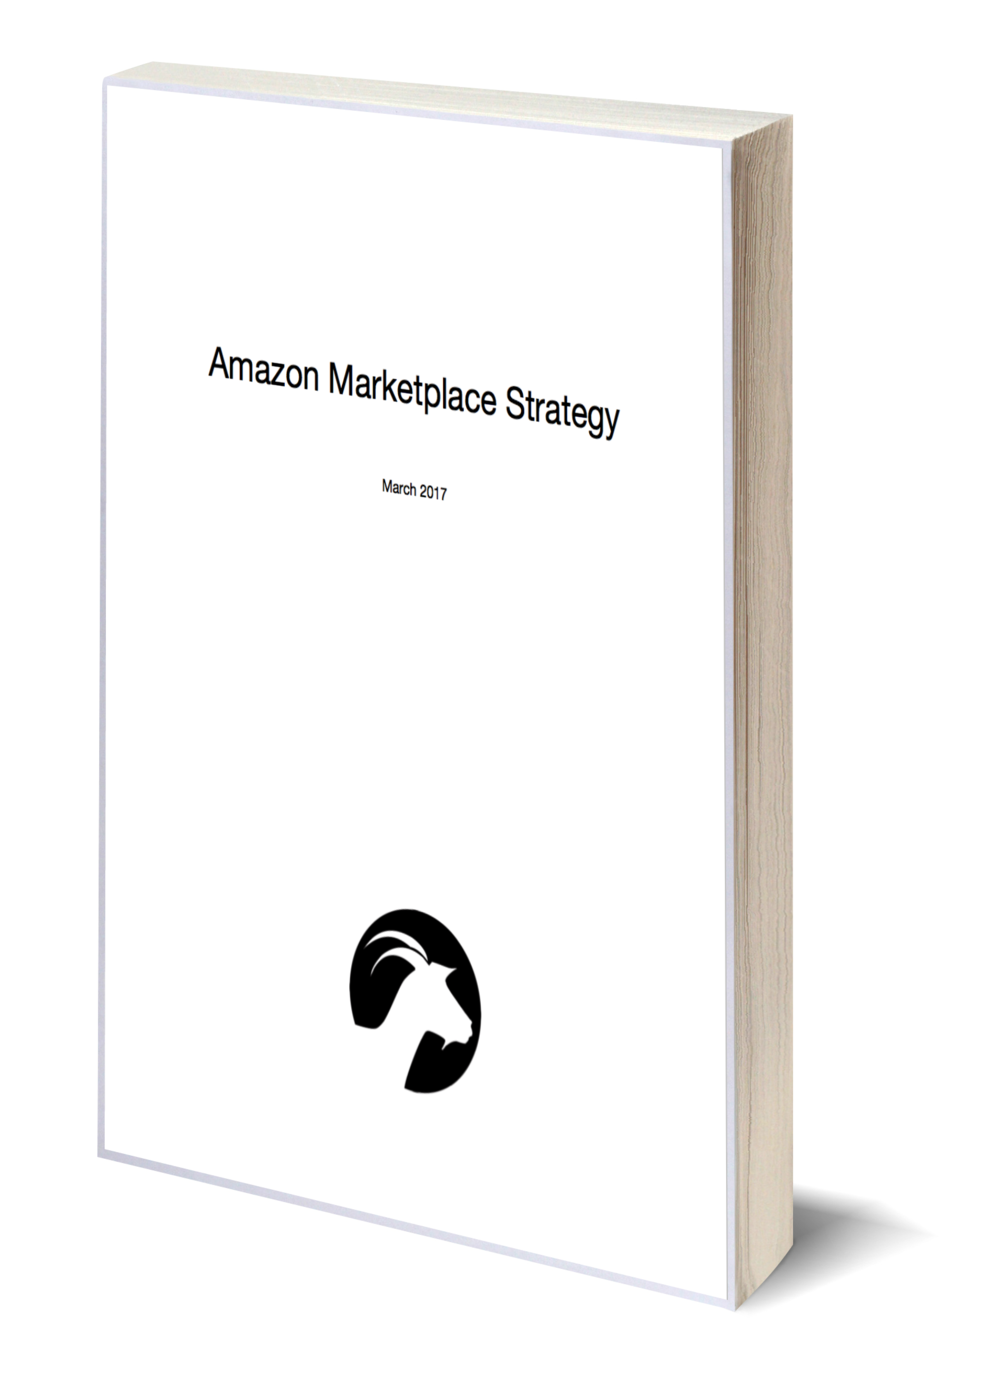 AmazonMarketplaceStrategy